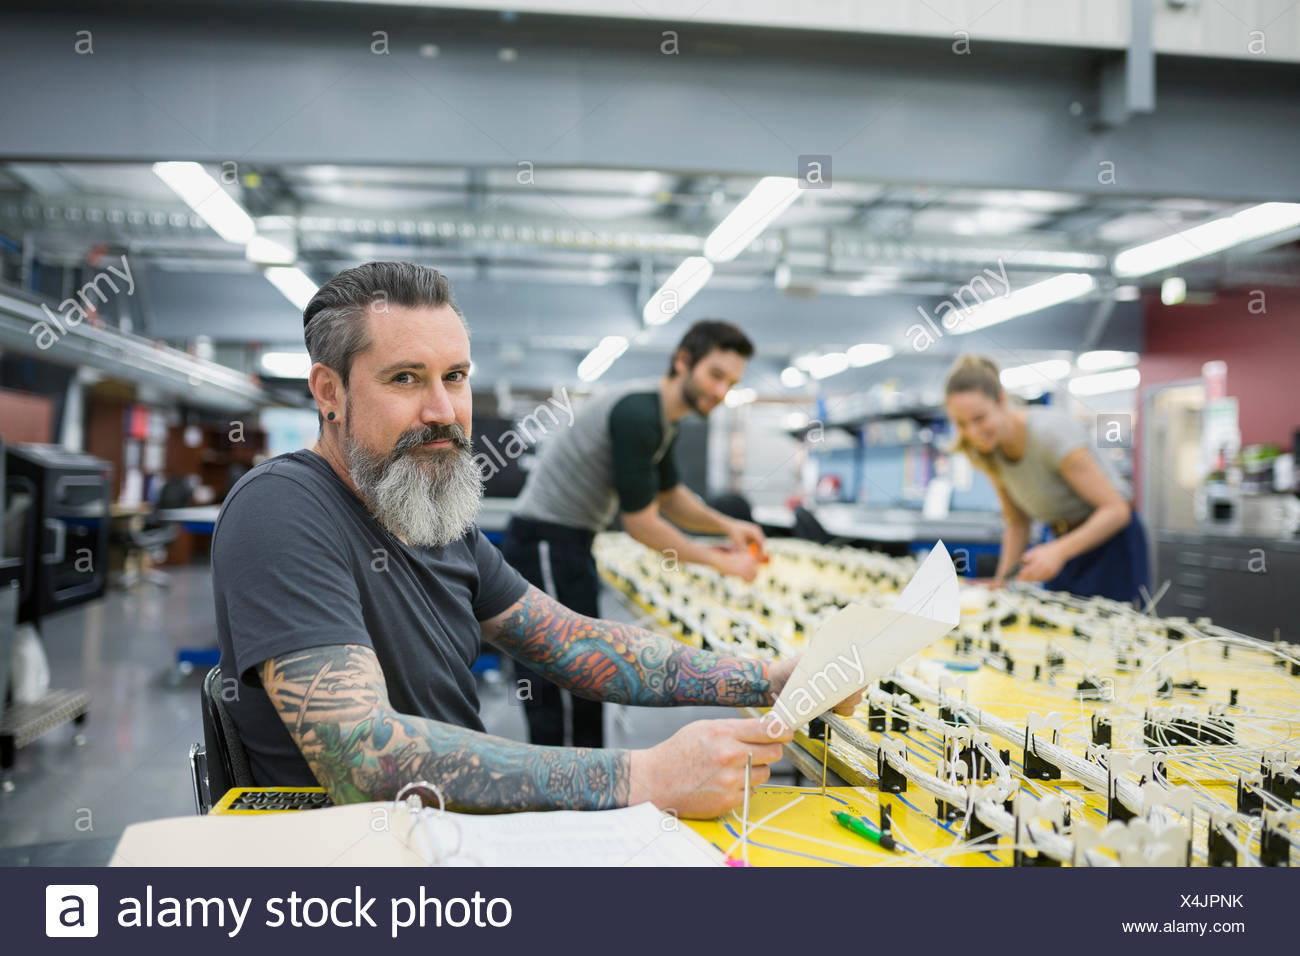 Wiring Harness Stock Photos & Wiring Harness Stock Images - Alamy